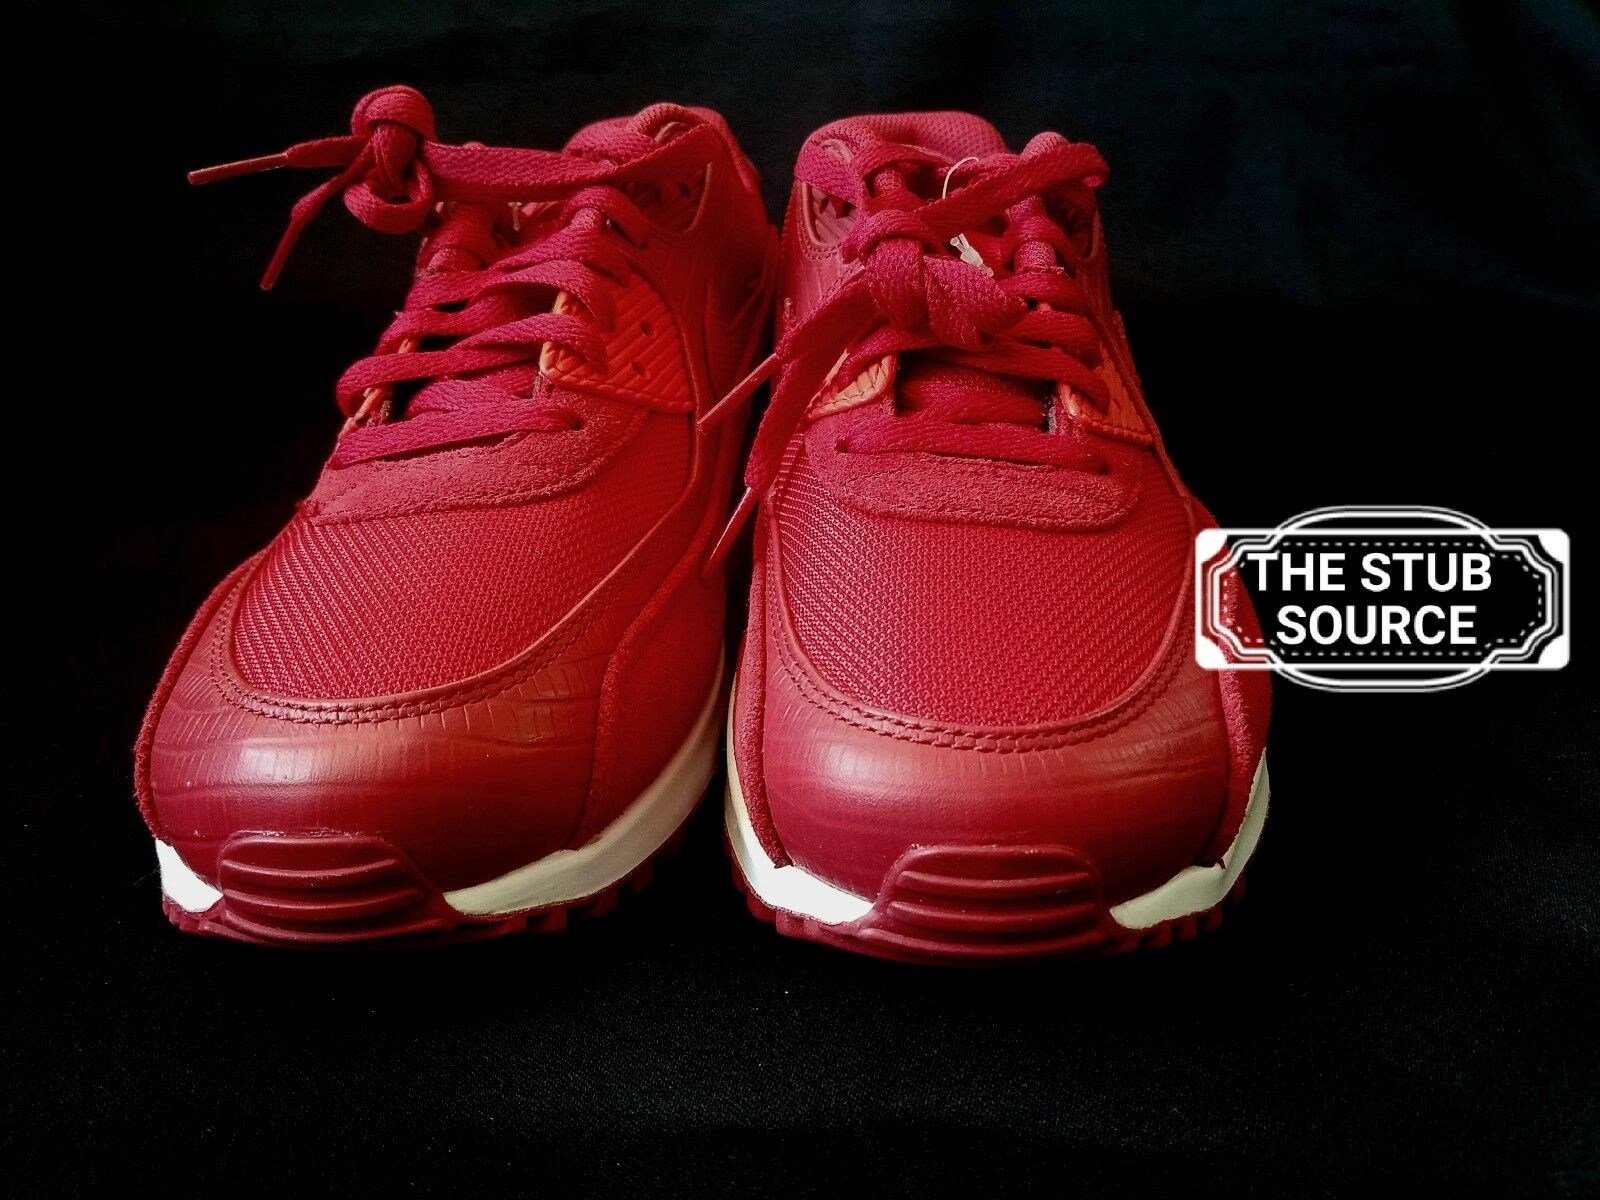 Nike Air Max 90 Premium Red Running Sample Shoes Sneakers Sz 9 700155-602 NWOB Wild casual shoes